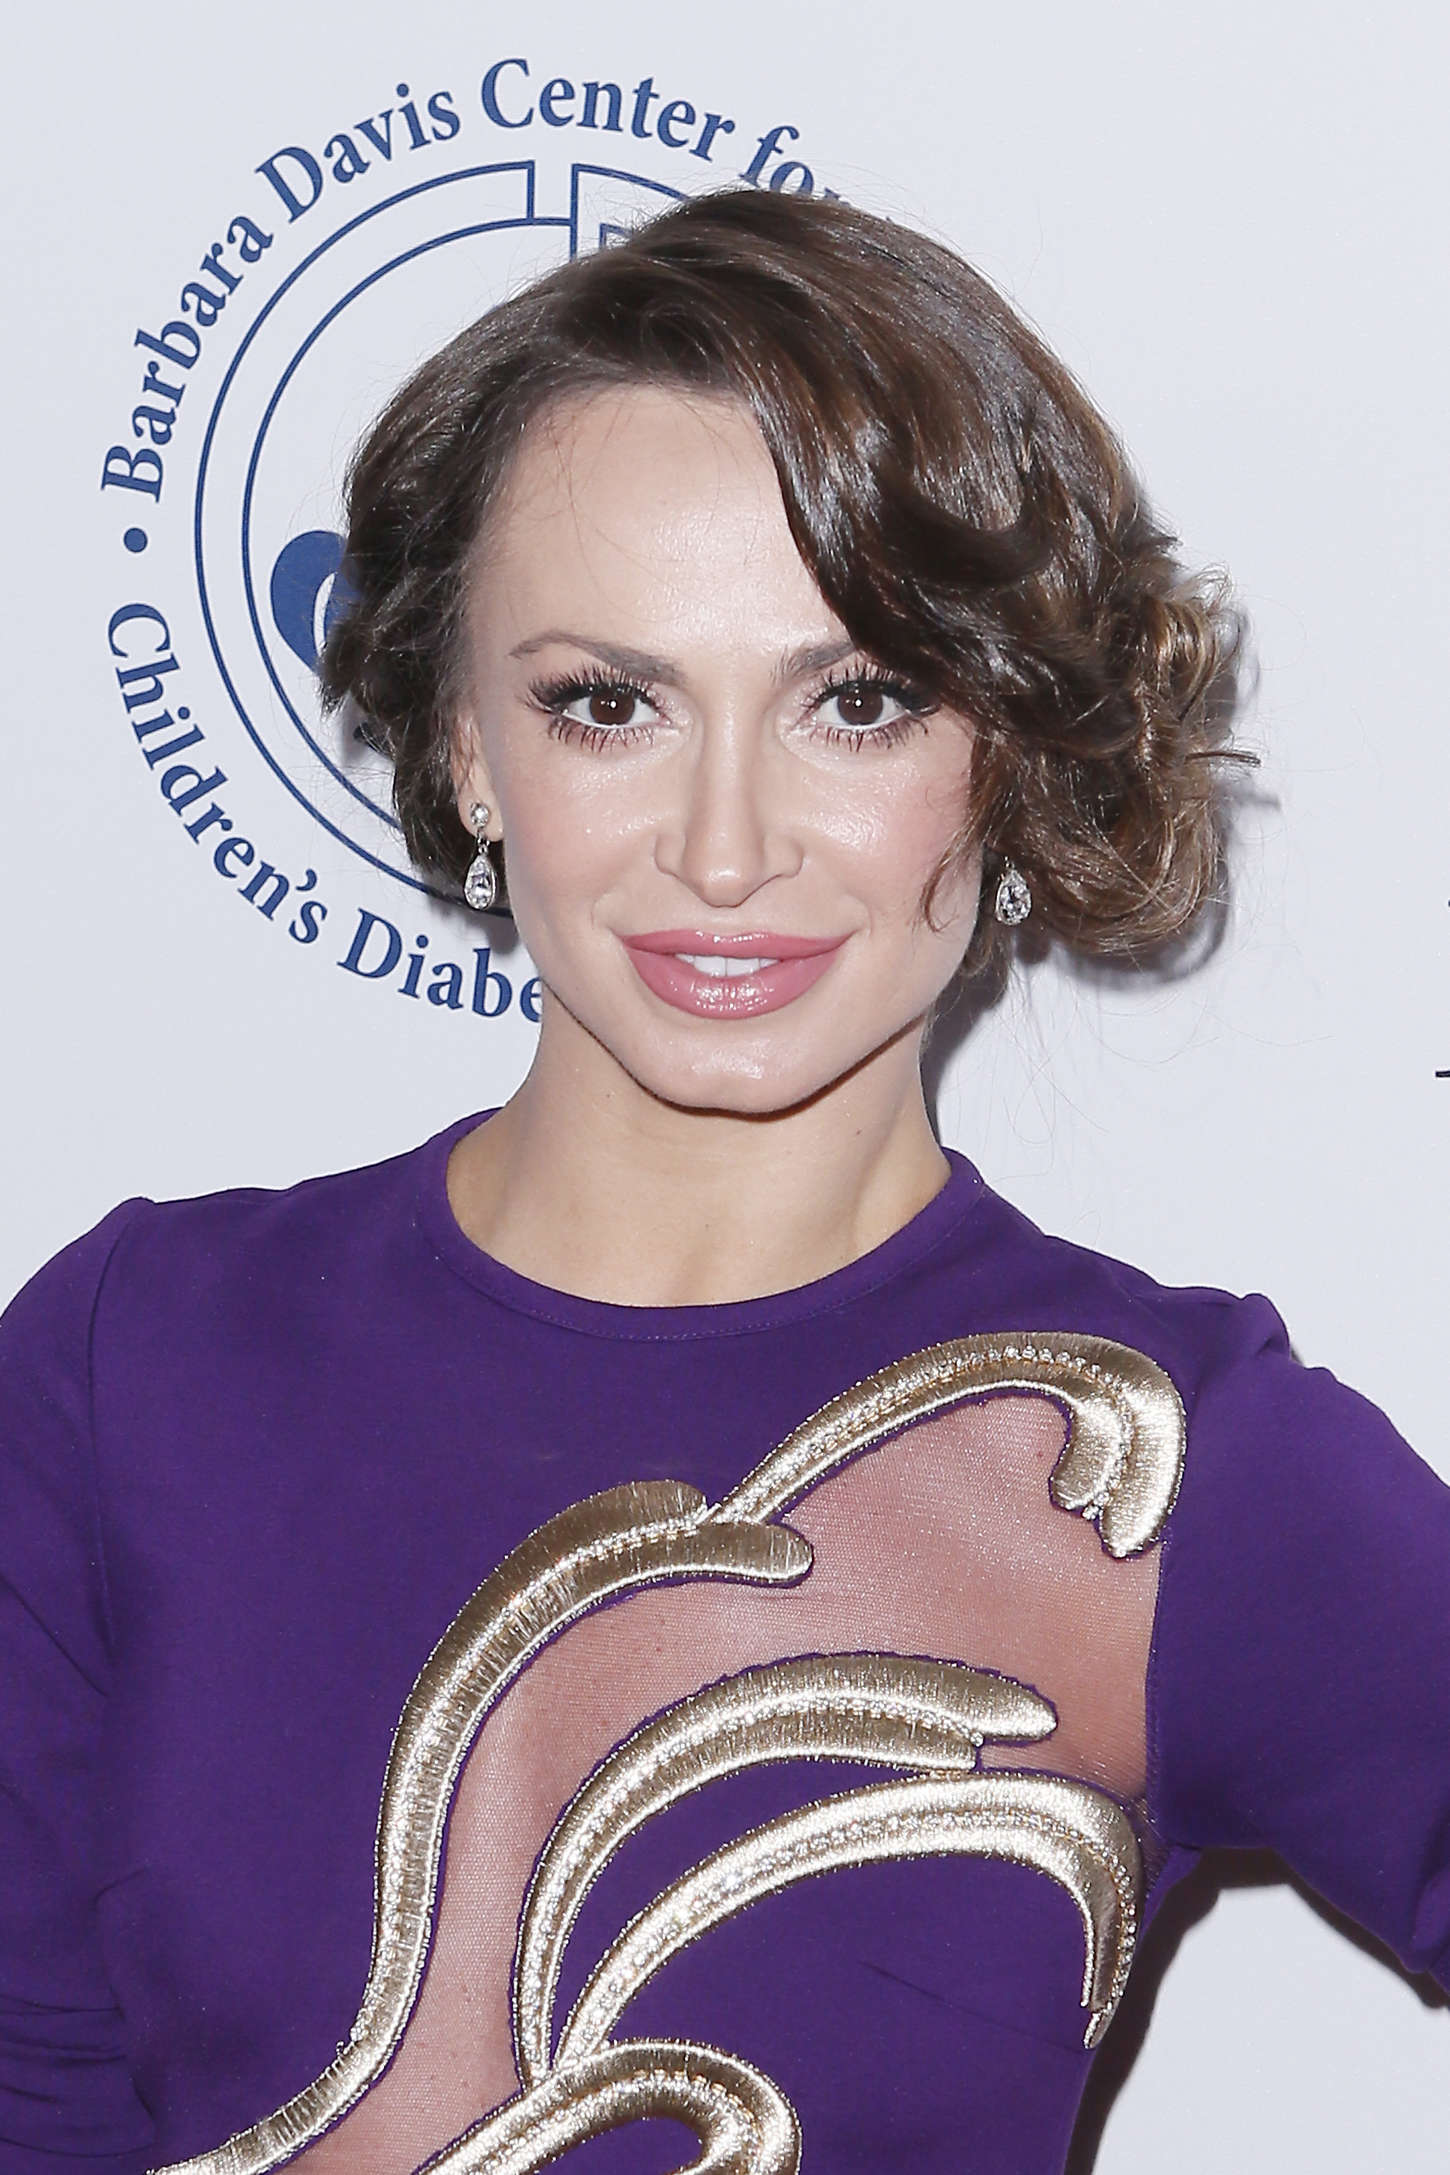 Karina Smirnoff Carousel of Hope Ball in Beverly Hills